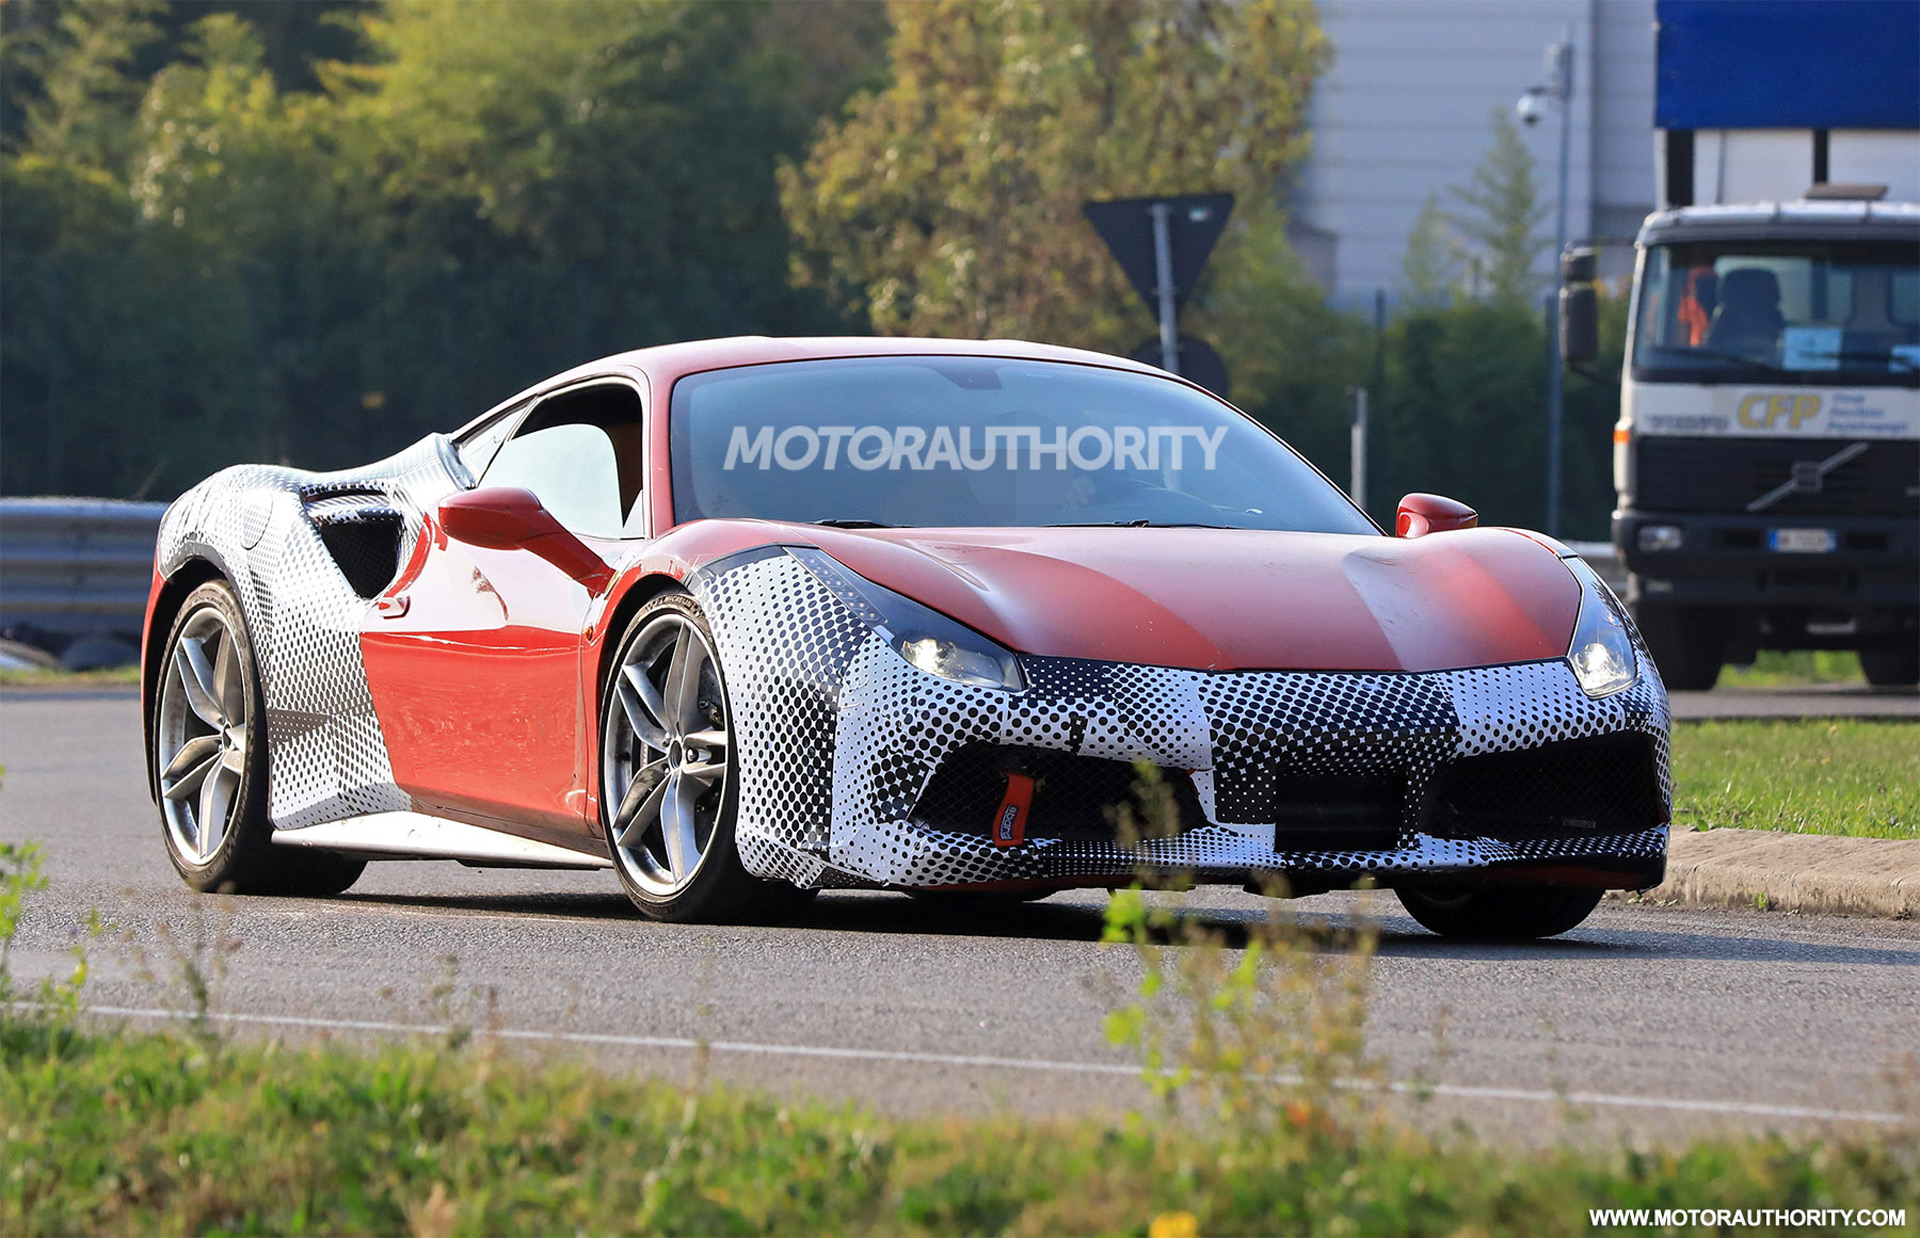 Leaked details suggest Ferrari 488 GTO could be faster than a LaFerrari